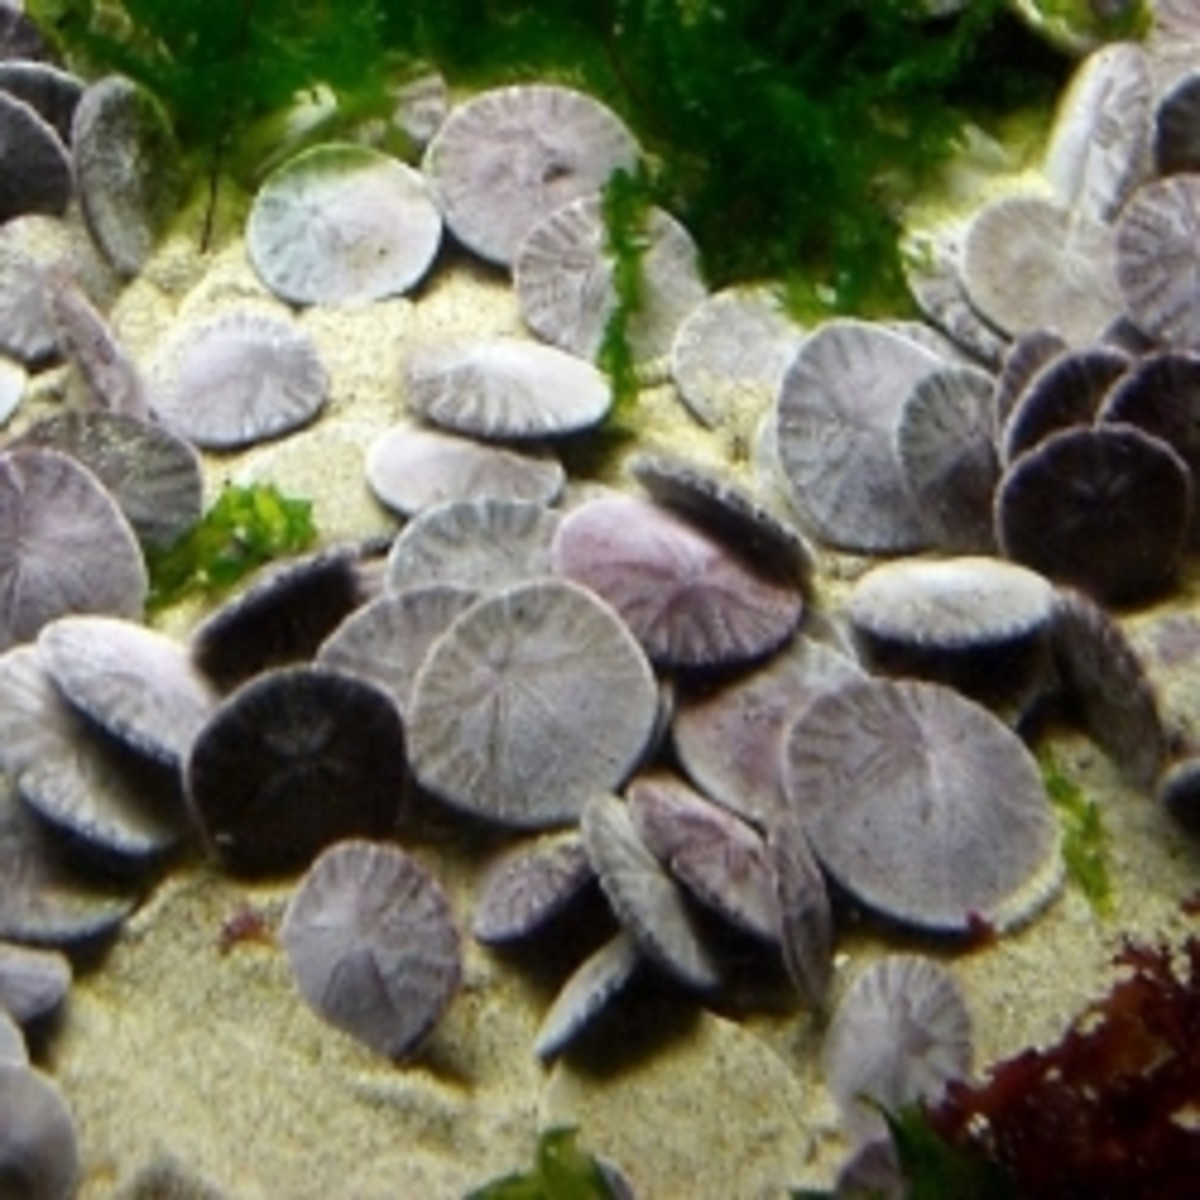 Live Sand Dollars in Costa Rica